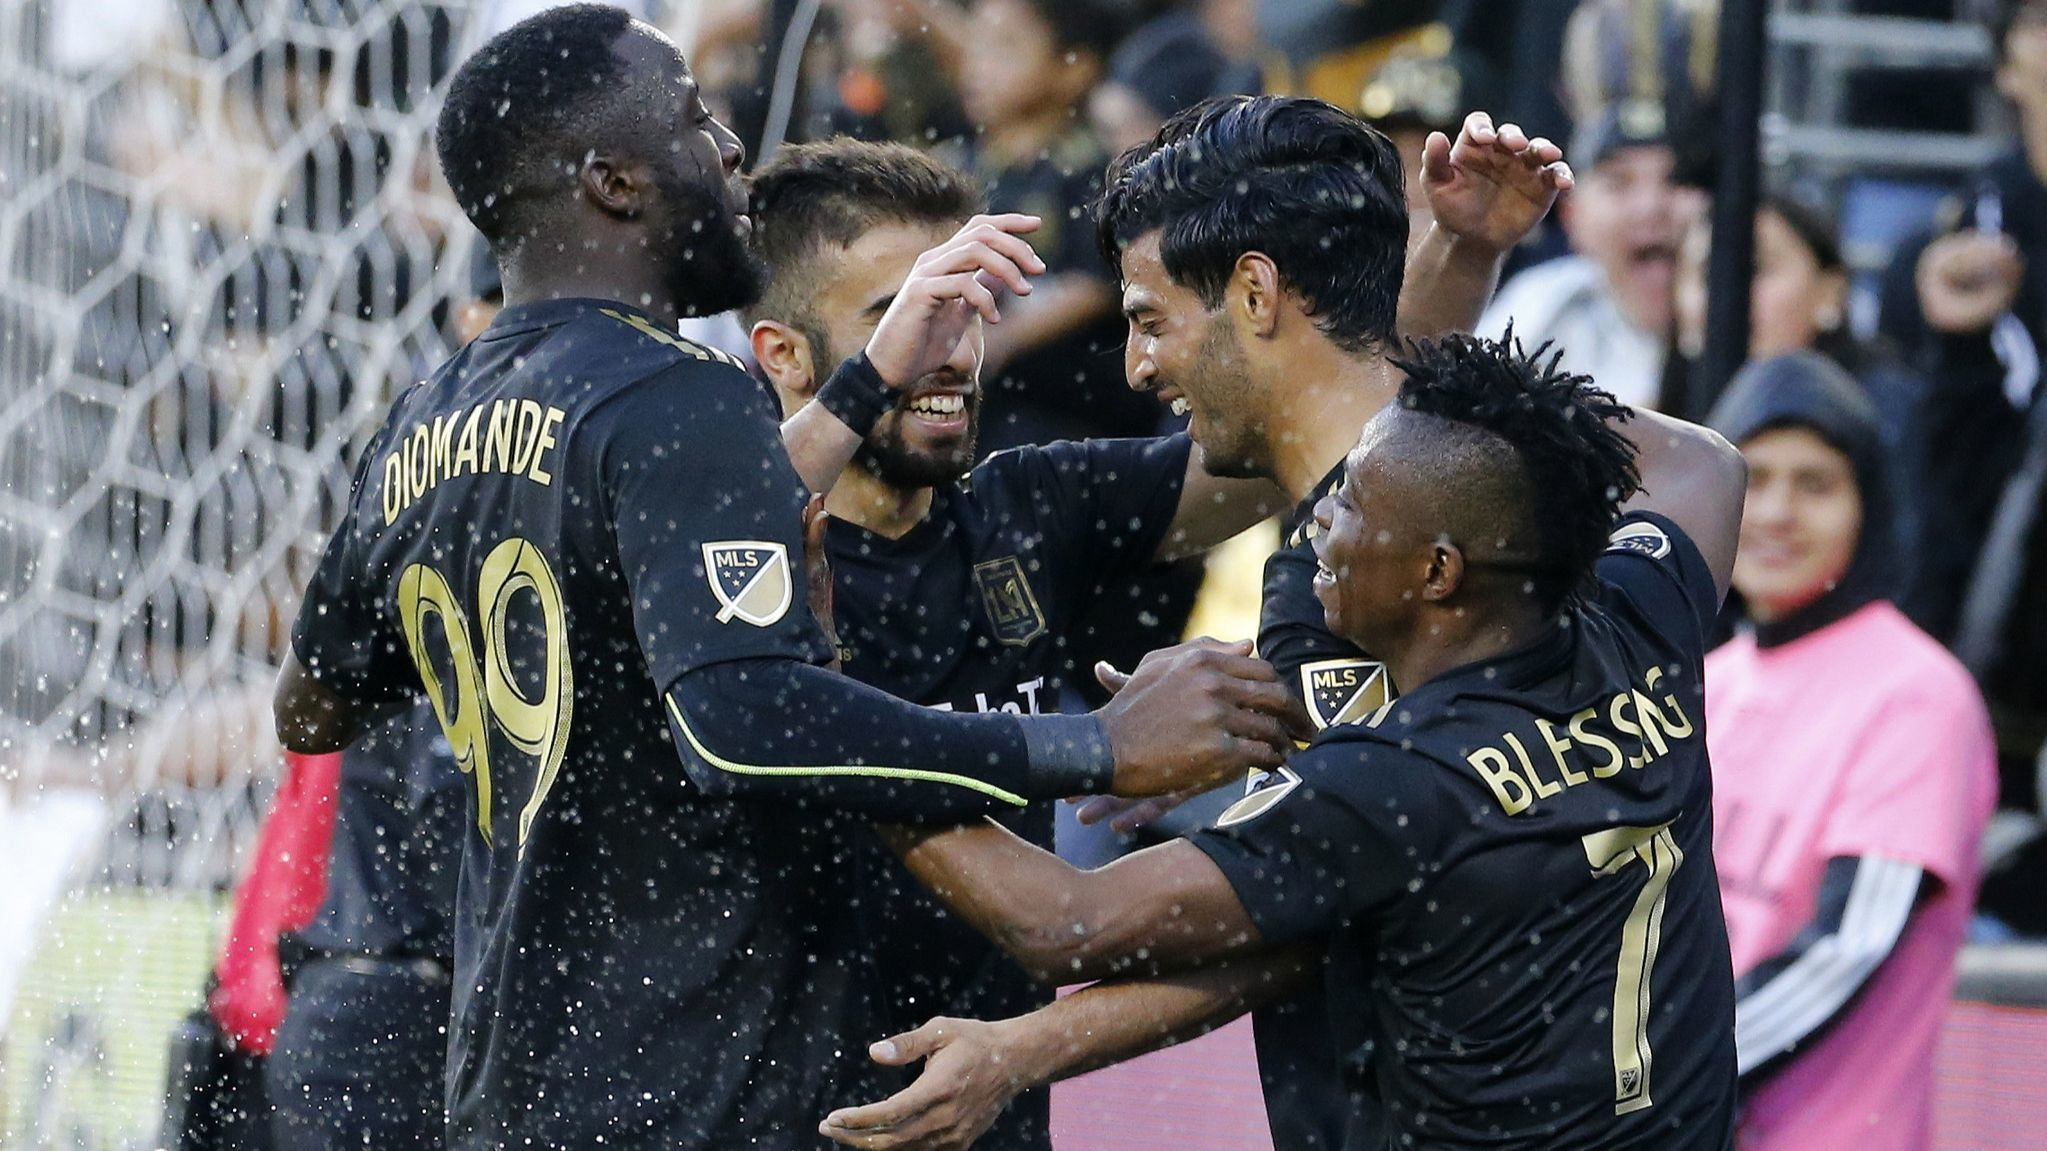 LAFC routs Timbers 4-1 for second win in a row to open MLS season